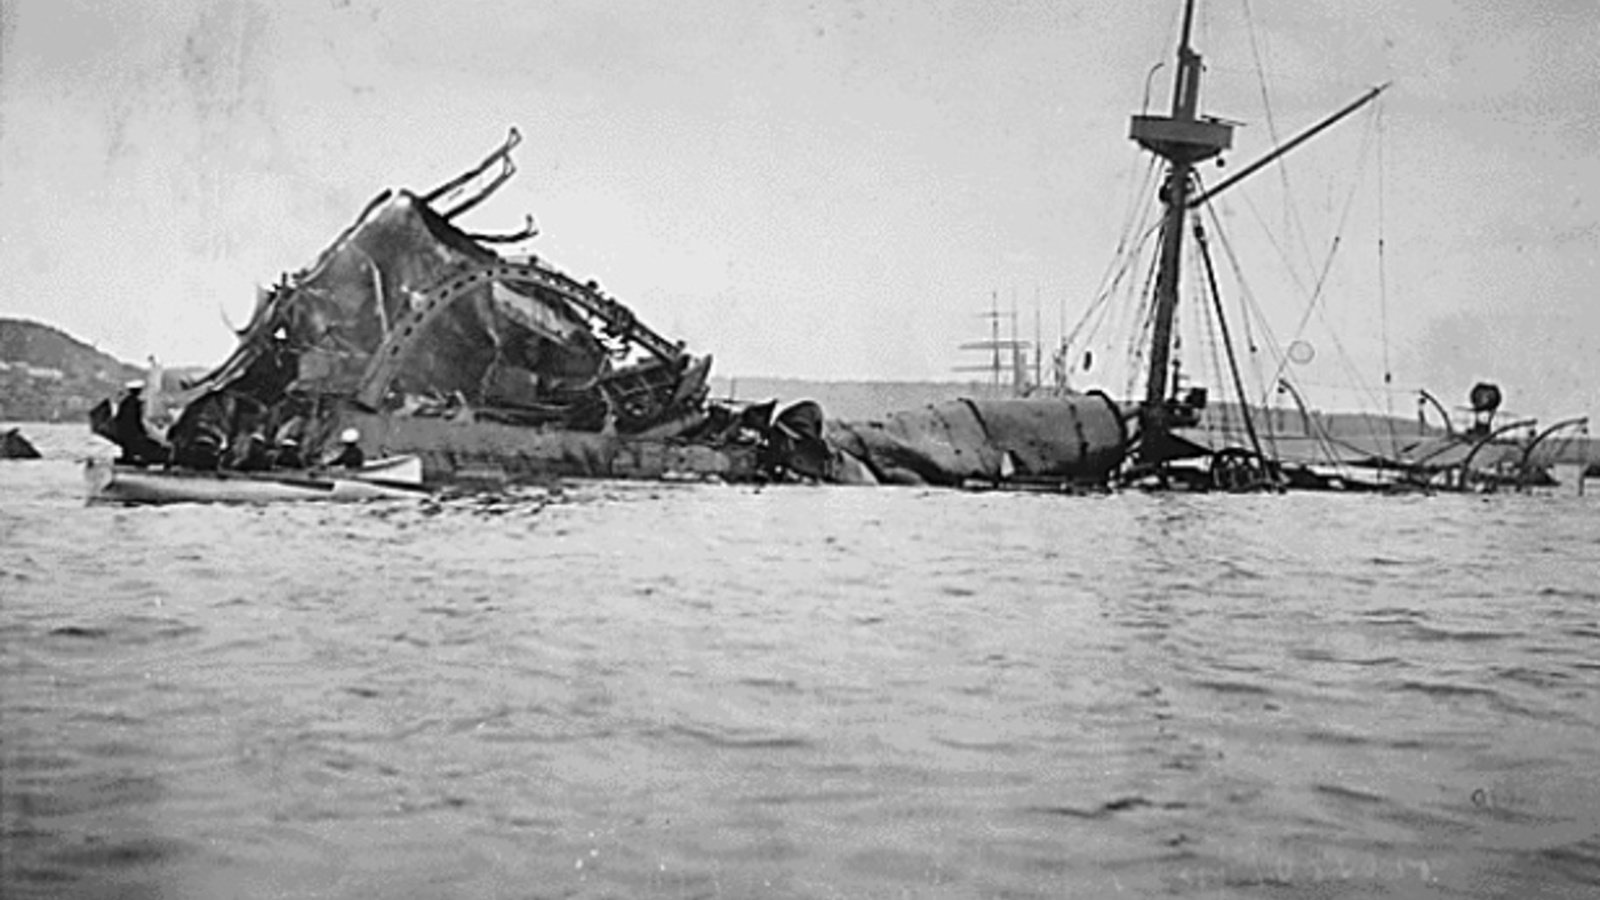 The wreckage of the U.S.S. Maine